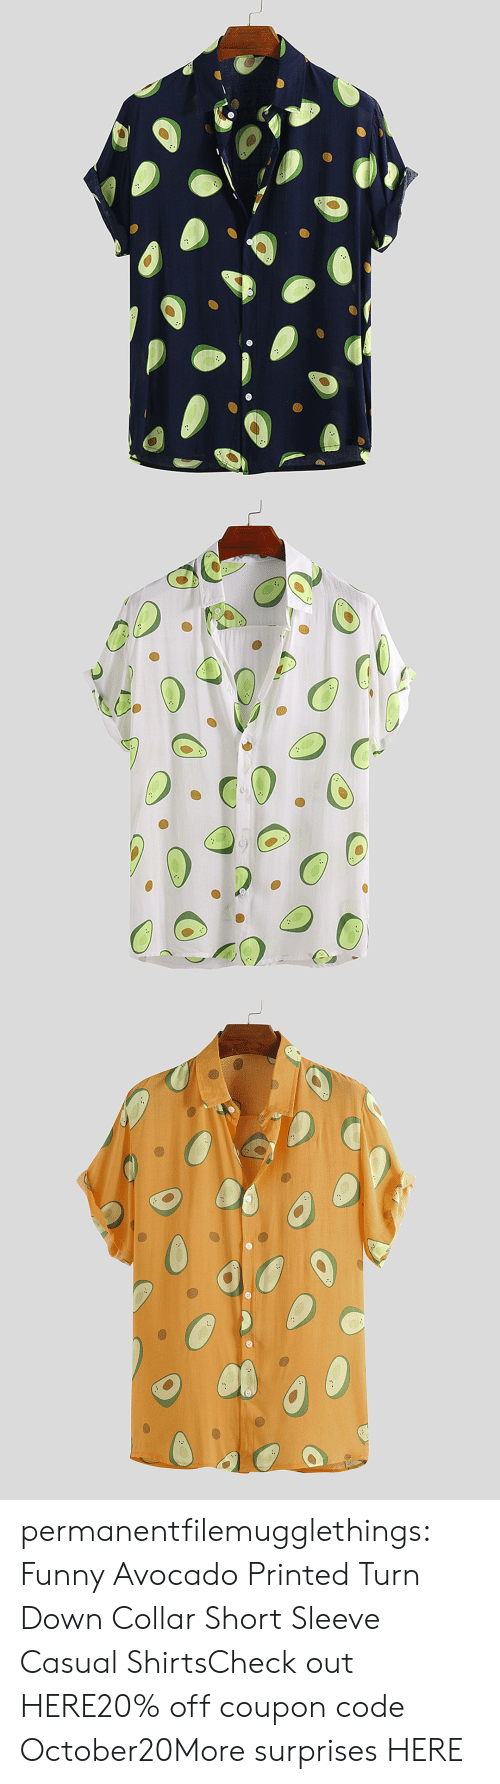 Avocado: permanentfilemugglethings:  Funny Avocado Printed Turn Down Collar Short Sleeve Casual ShirtsCheck out HERE20% off coupon code:October20More surprises HERE